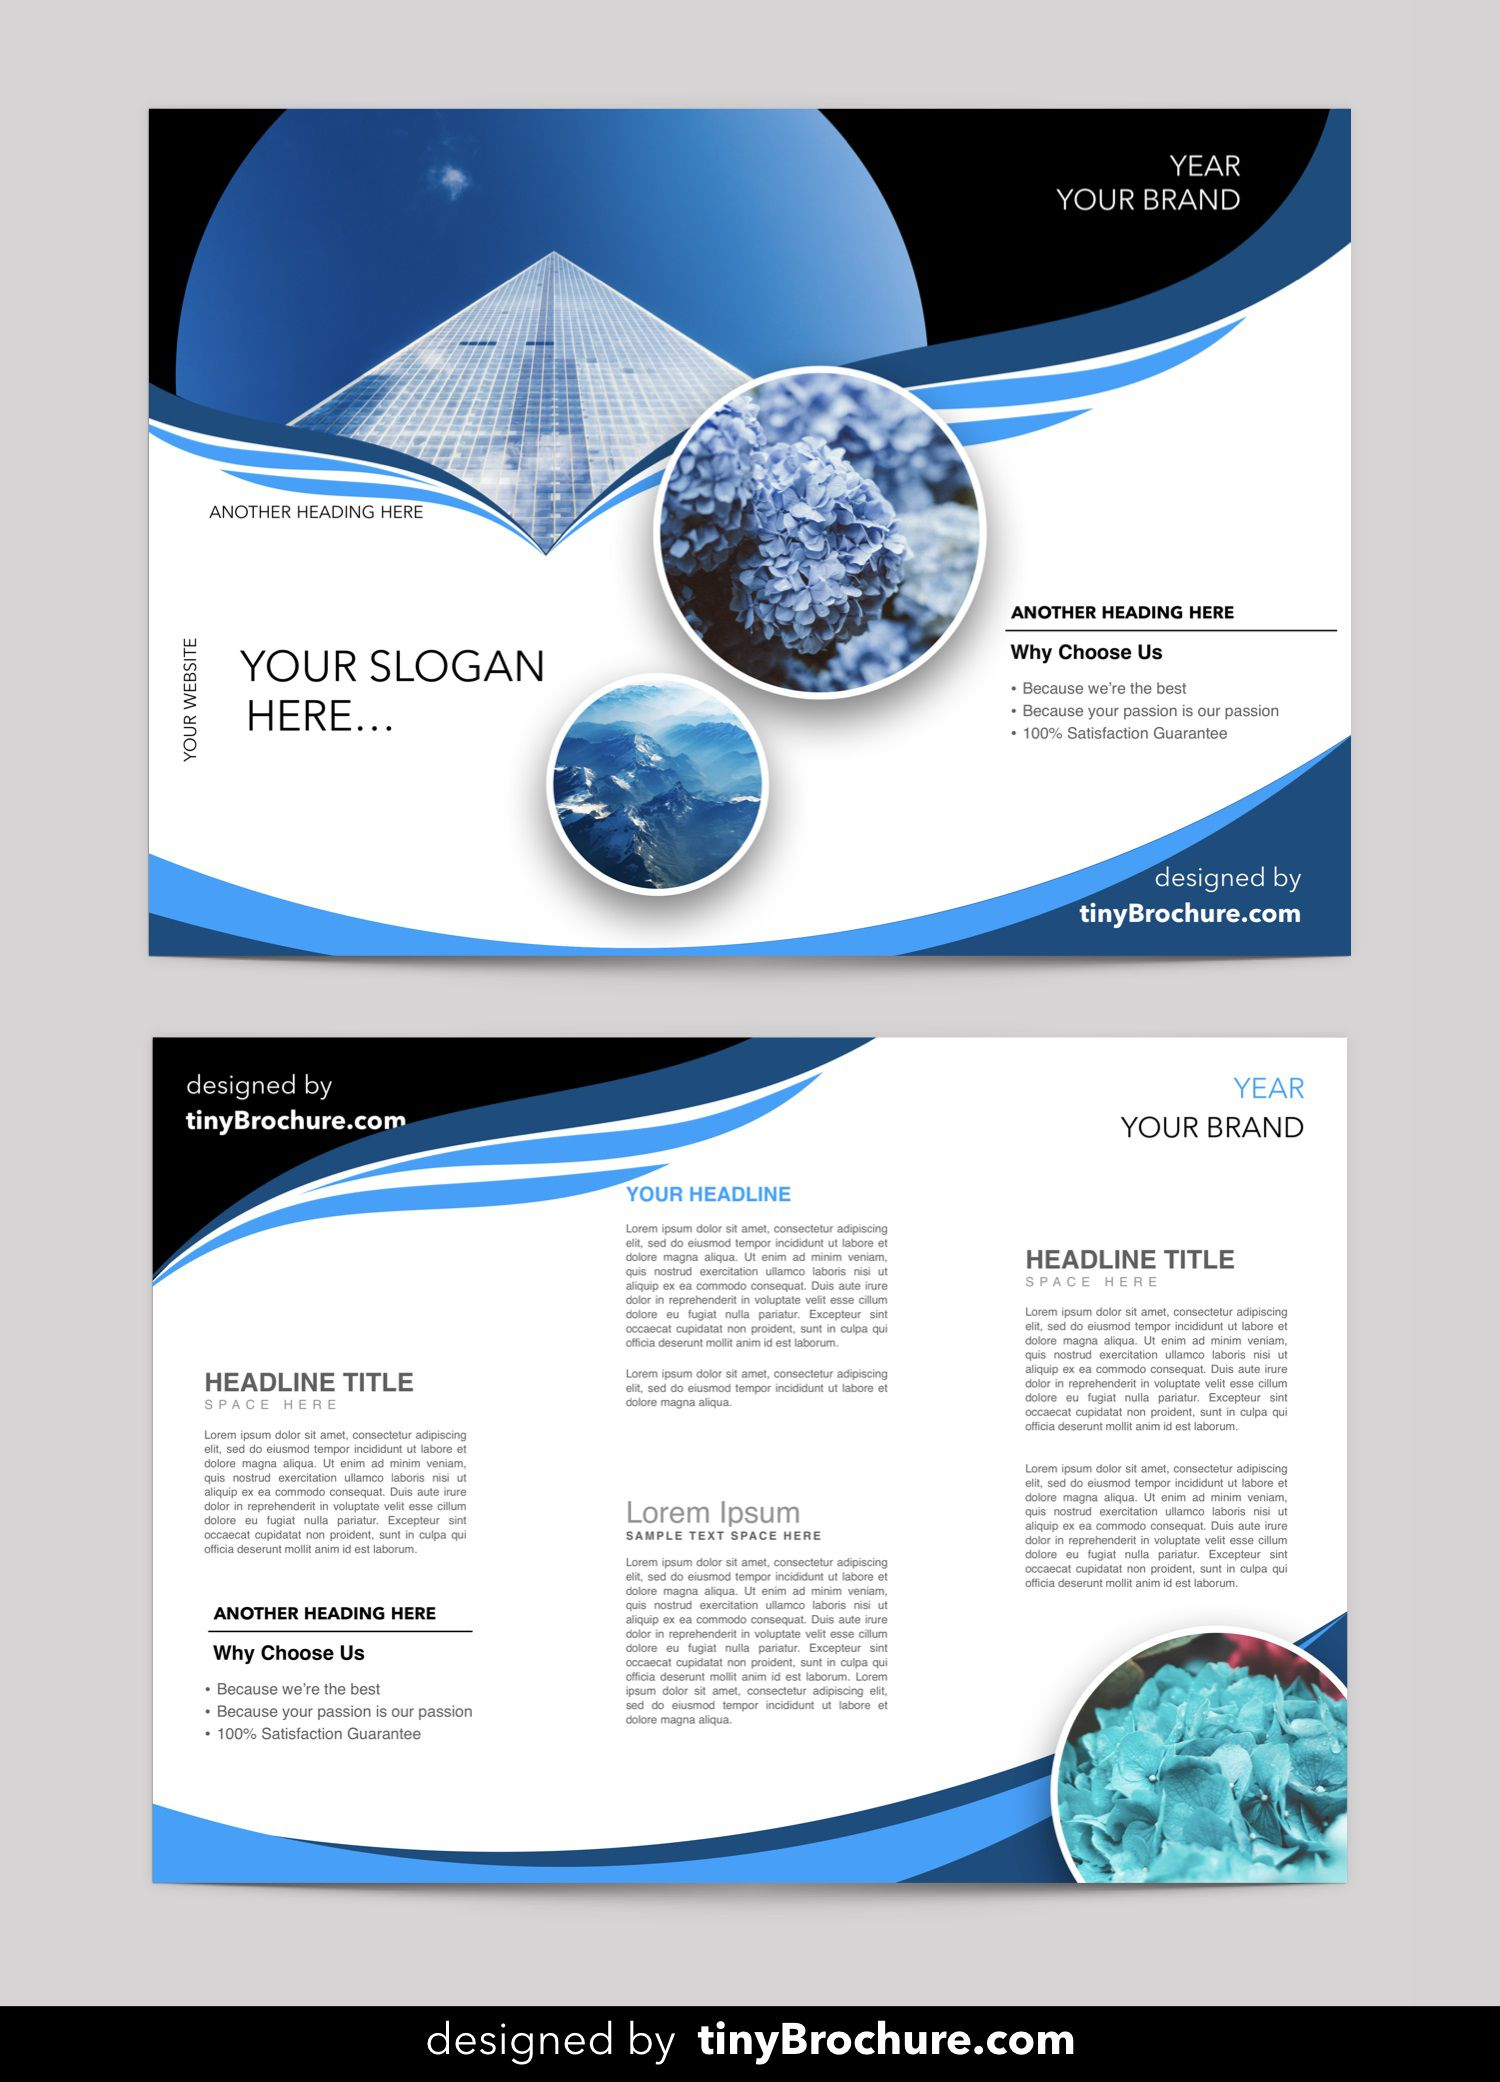 002 Dreaded Brochure Template Free Download Design  Microsoft Publisher Corporate Psd For Adobe IllustratorFull